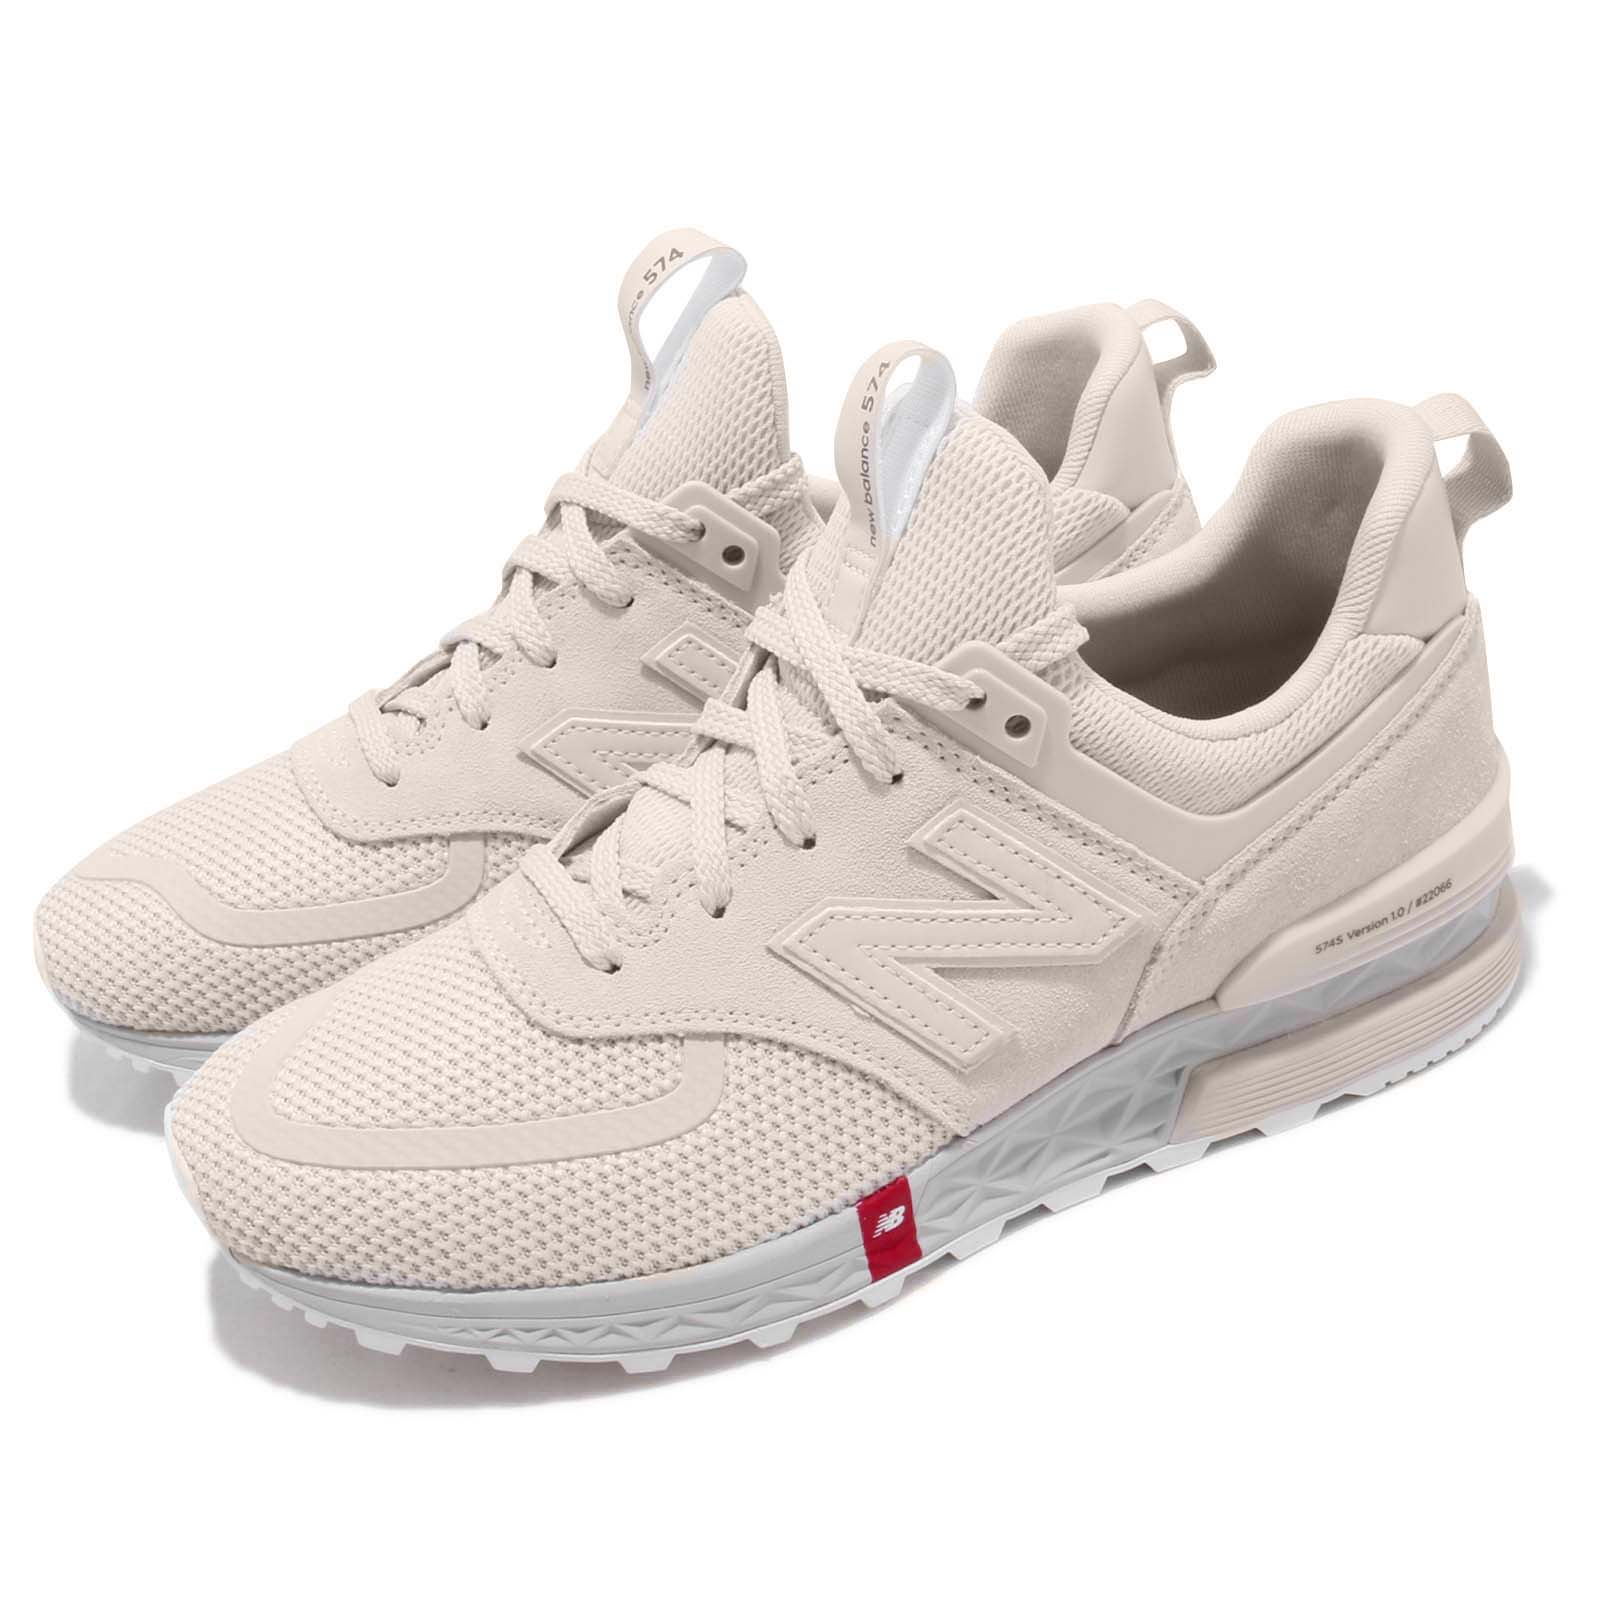 new style dcbf2 783a0 Details about New Balance MS574UTS D Beige Grey Red Men Running Shoes  Sneakers MS574UTSD